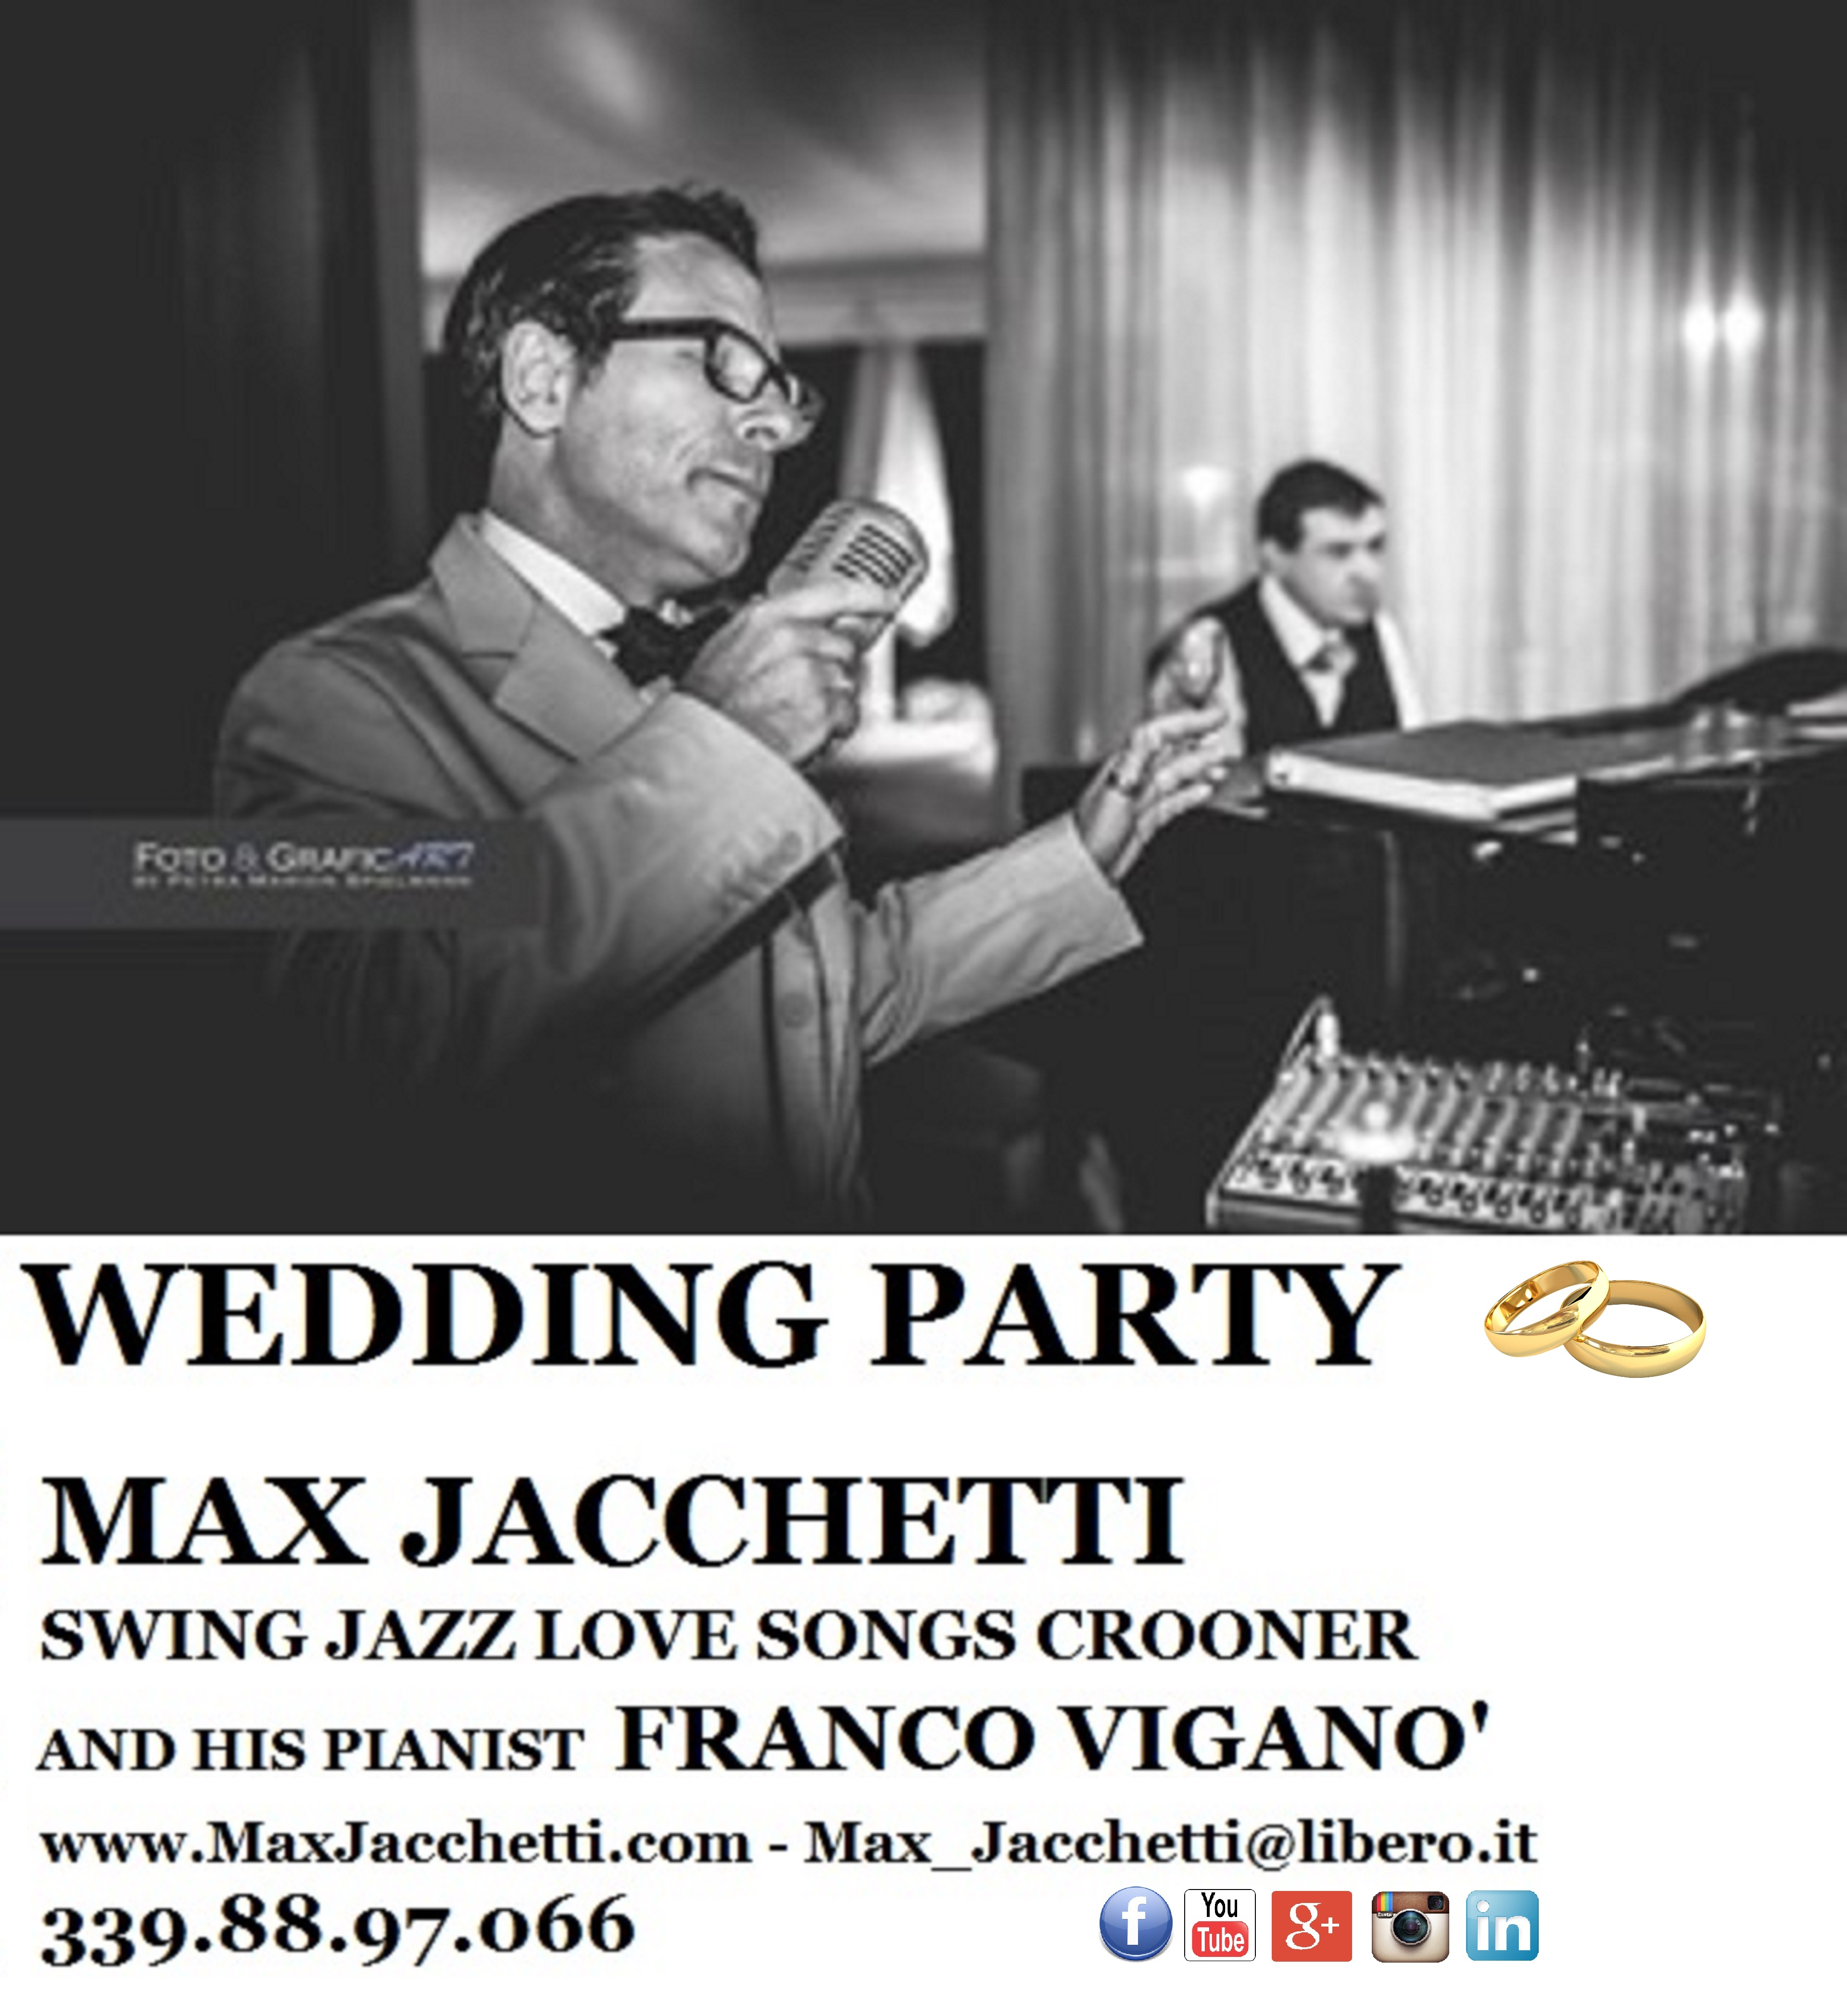 MAX JACCHETTI Swing Jazz Love Songs Crooner picture